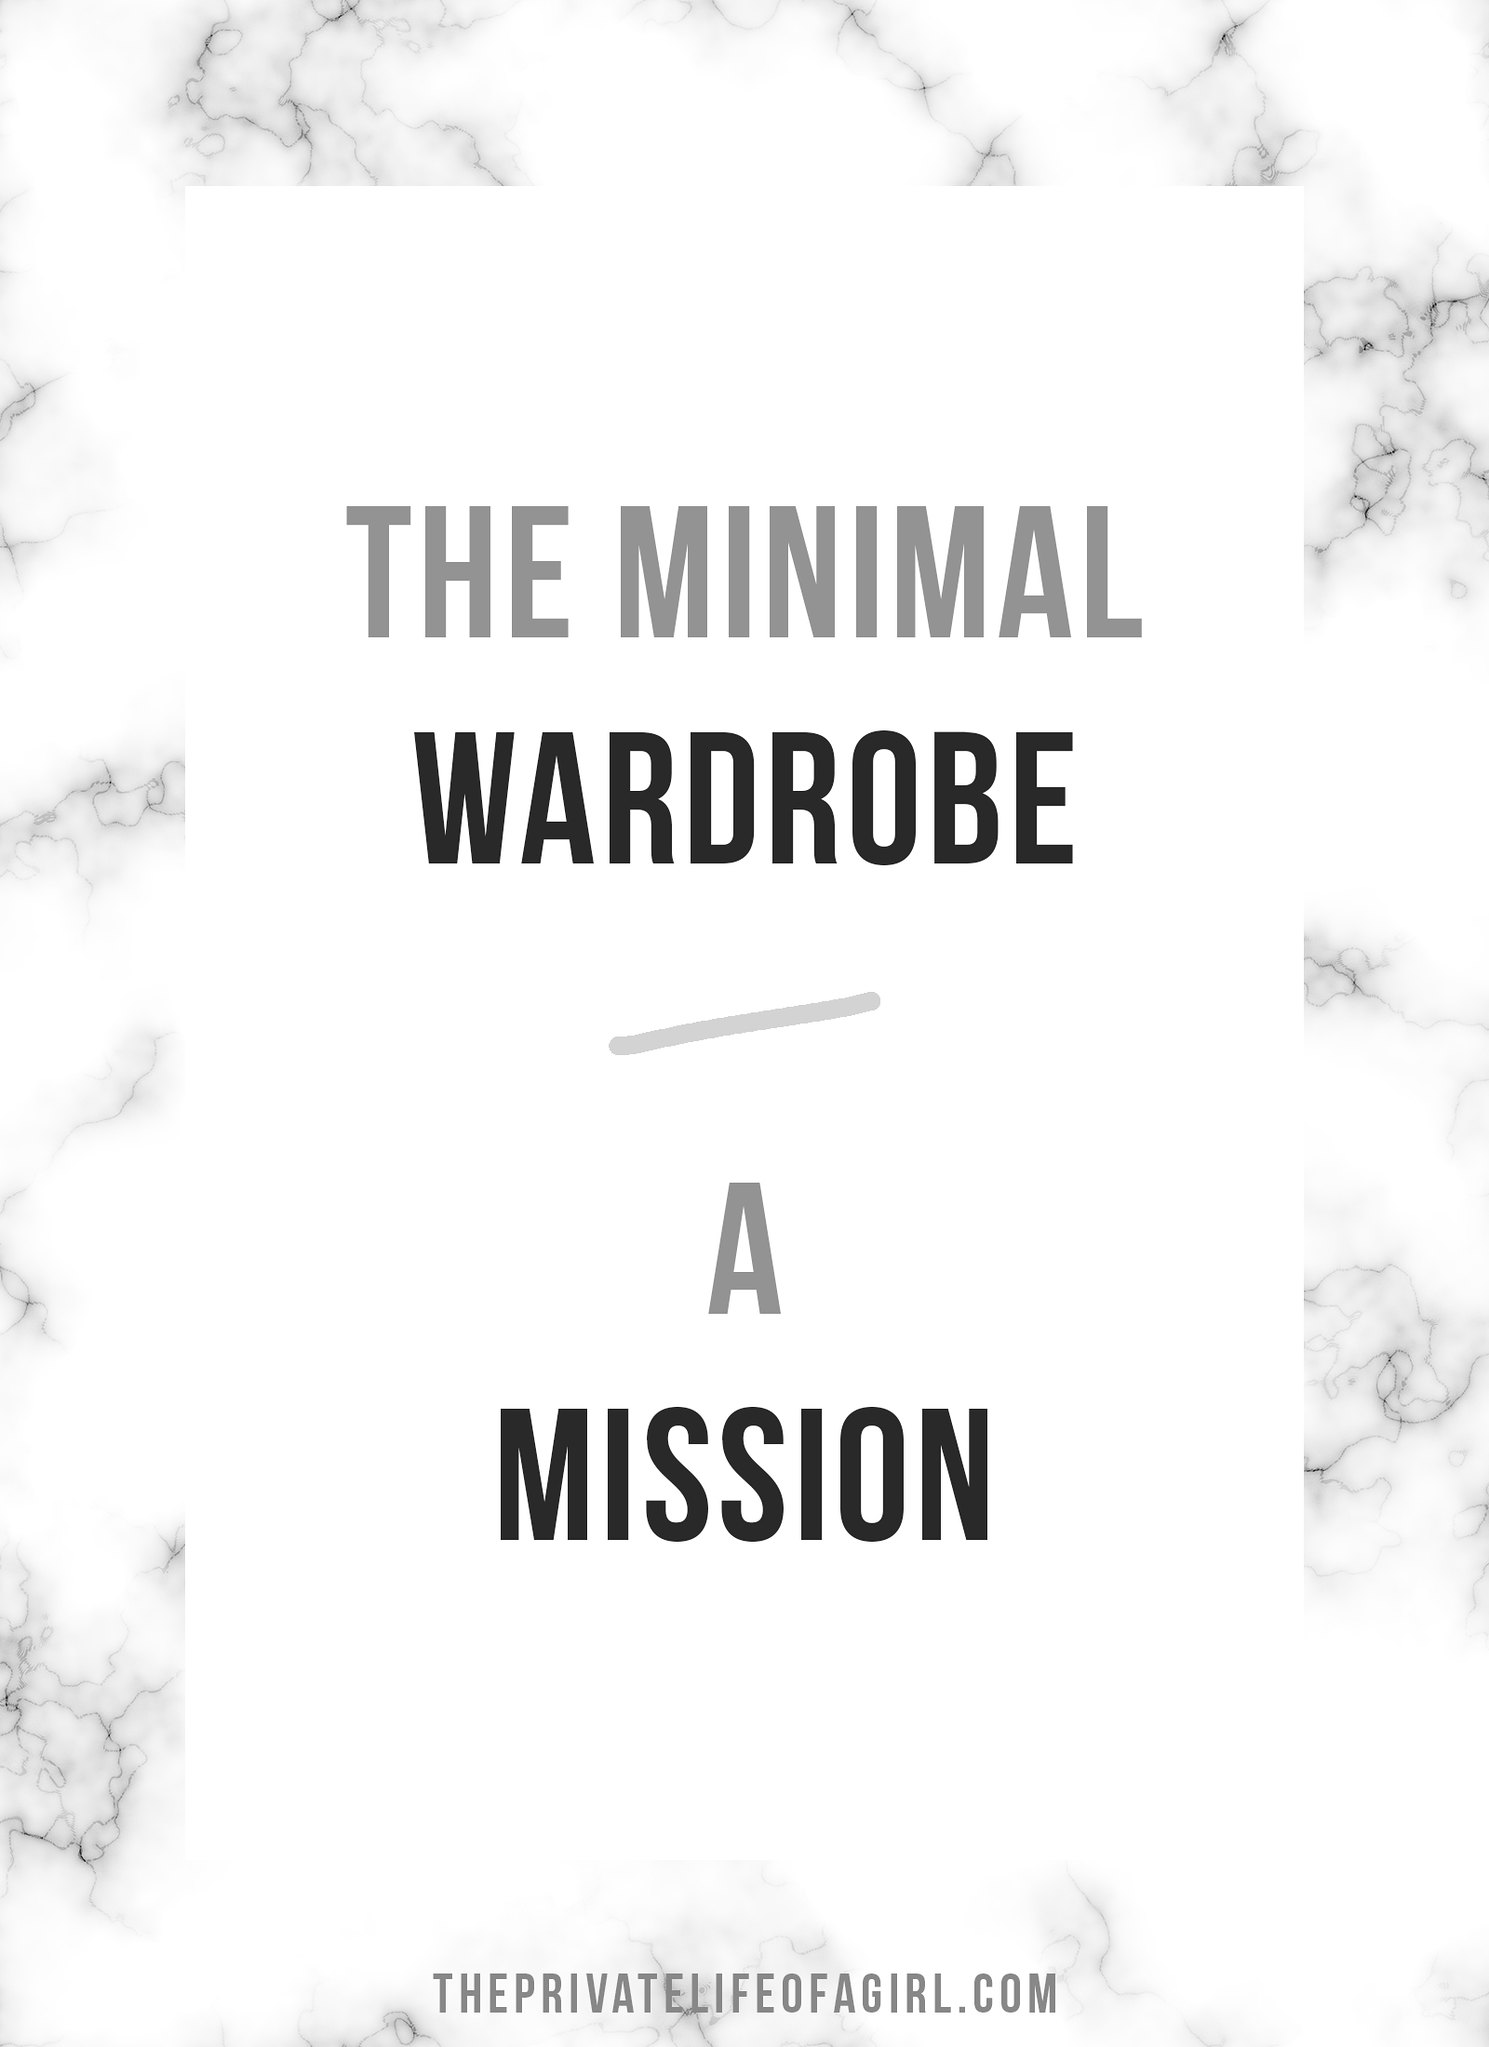 The Minimal Wardrobe Mission